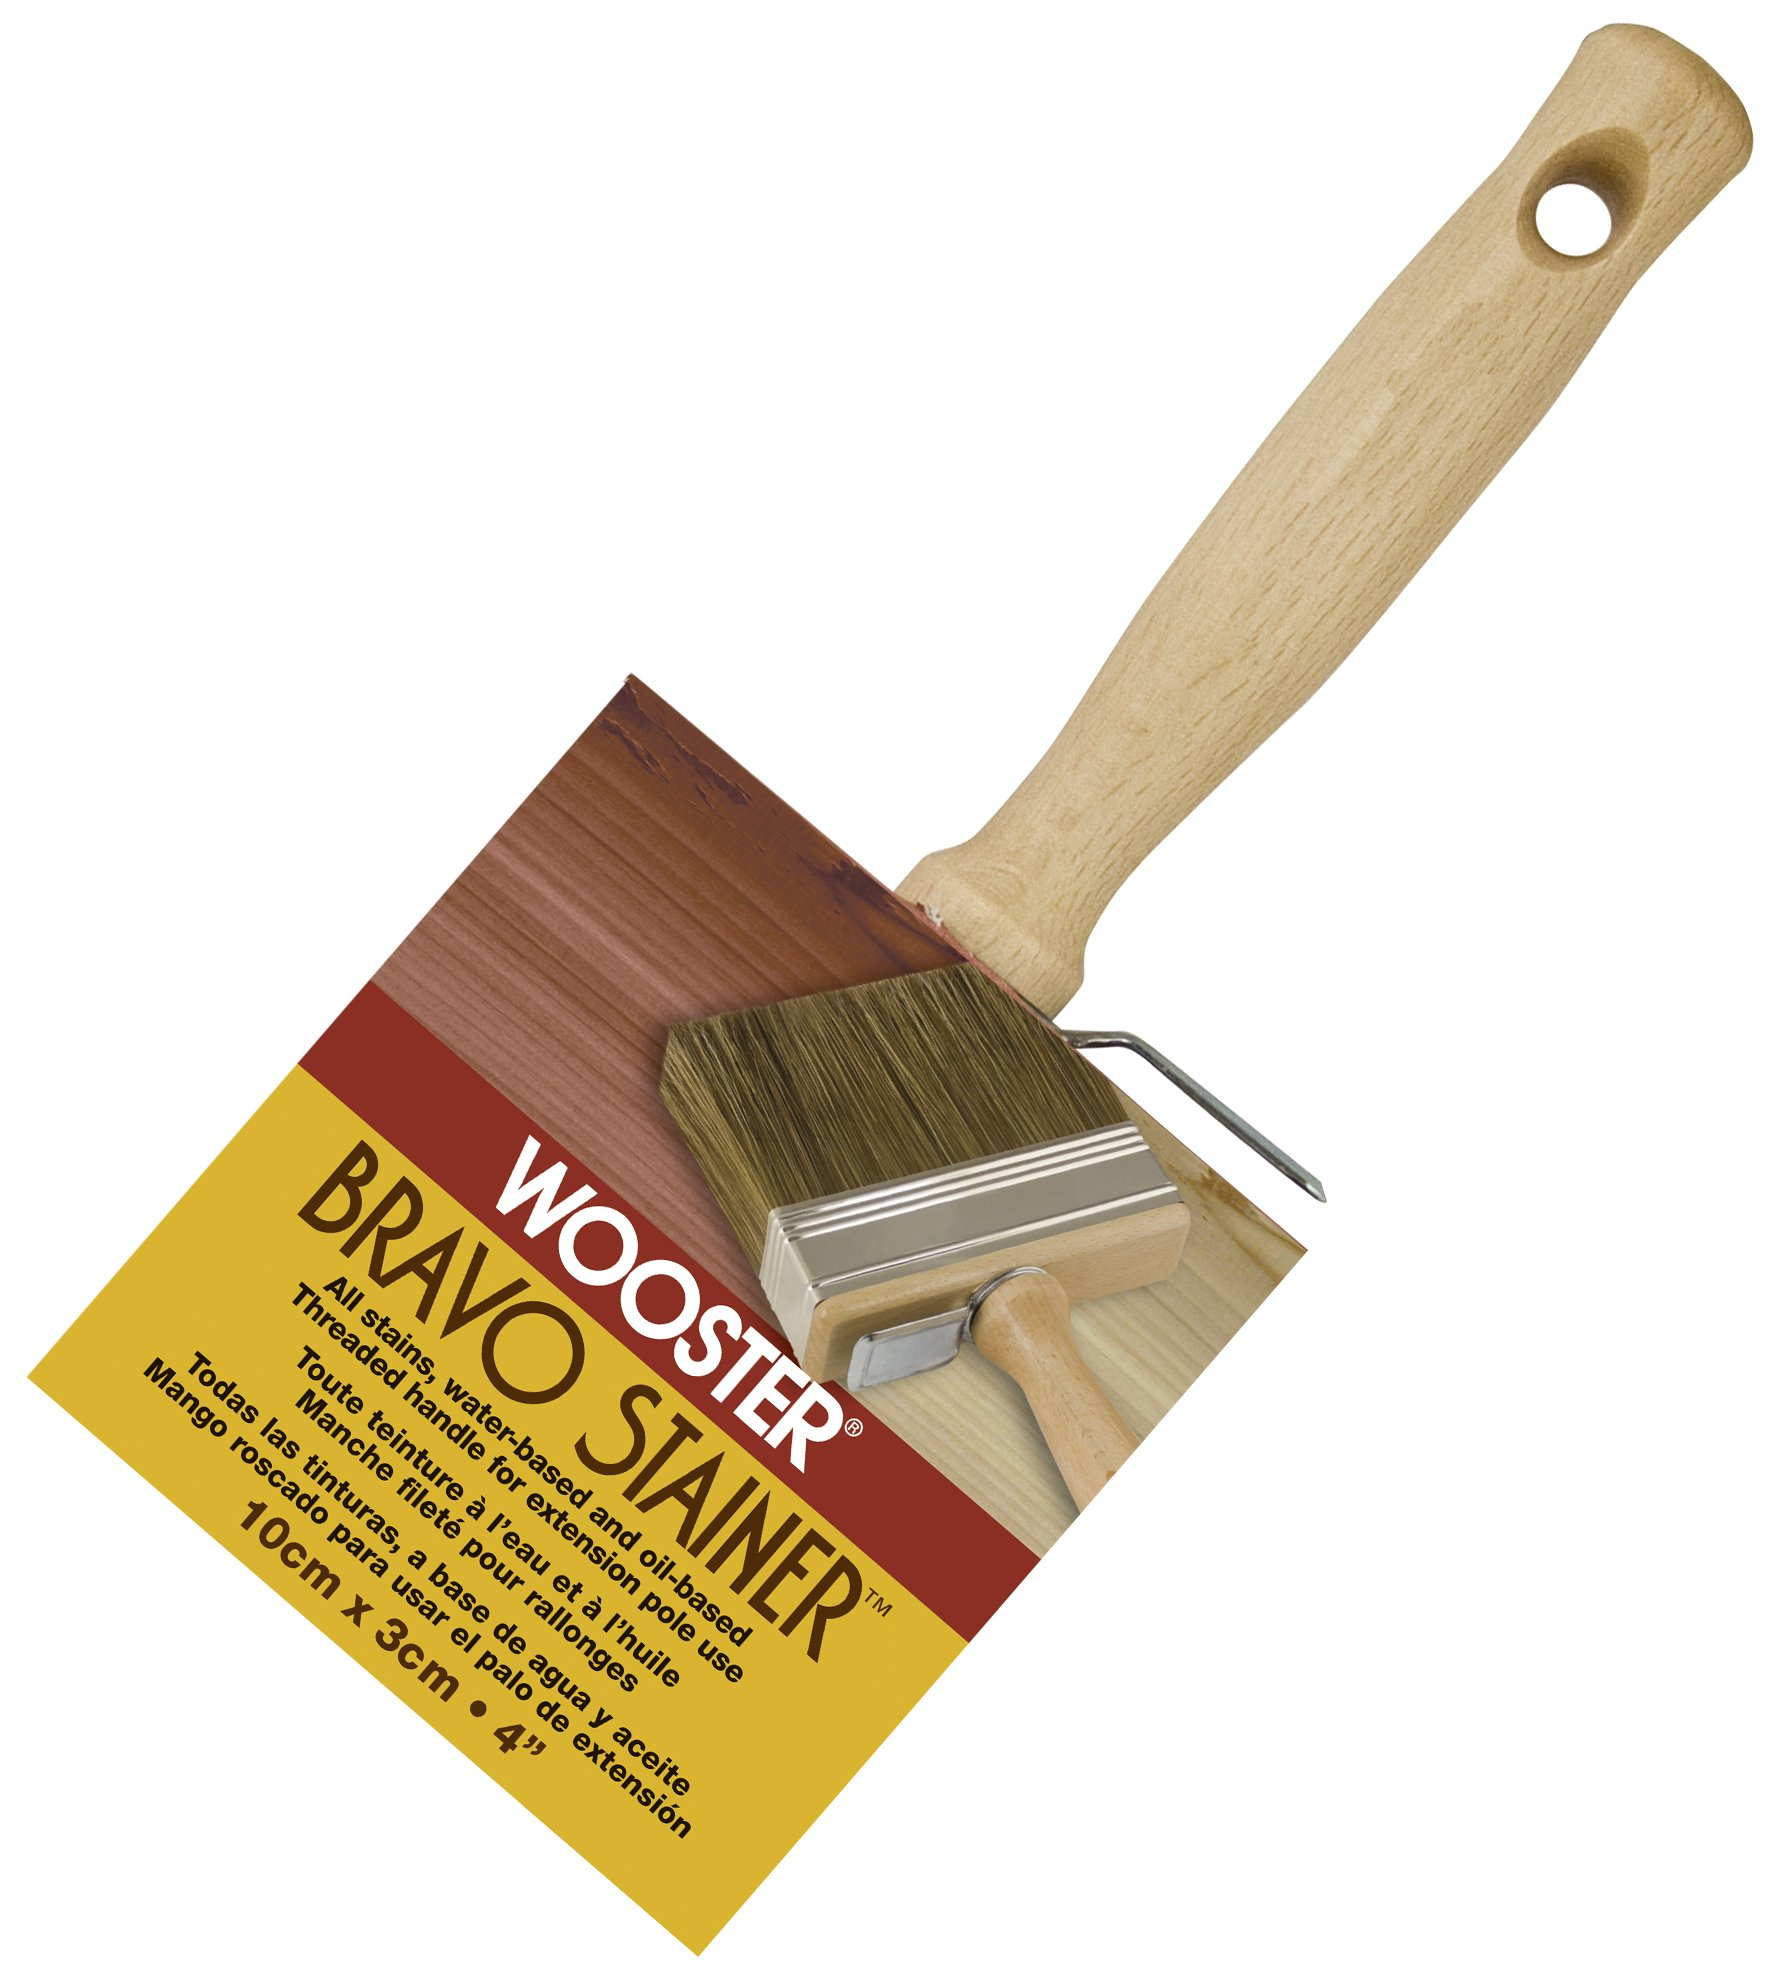 Wooster Brush Not Available F5119-4 Bravo Stainer Bristle/Polyester Stain Brush, 4 Inch, 4-Inch by Wooster Brush